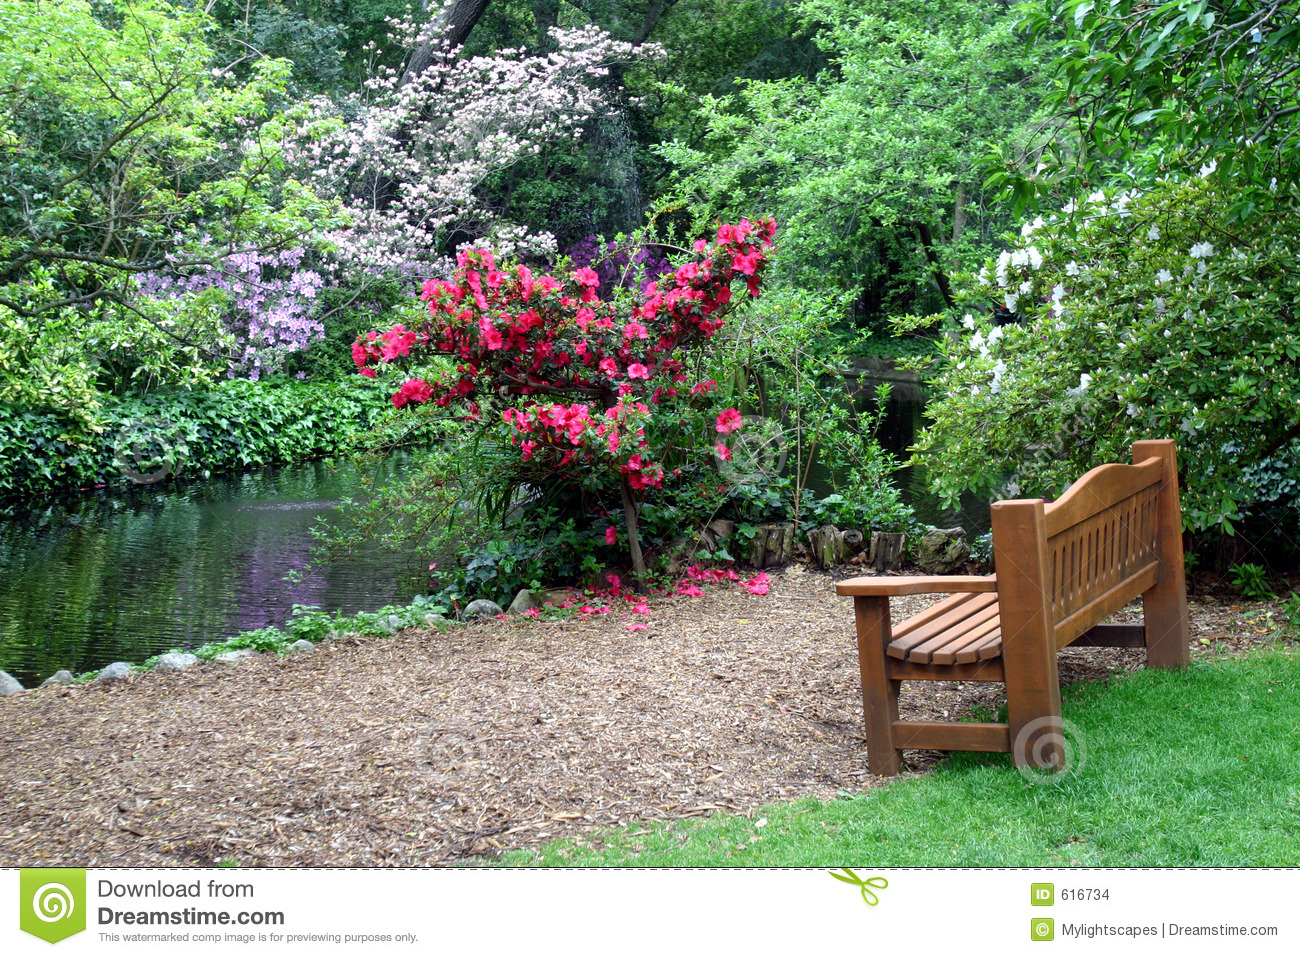 bancos de jardim no rs : bancos de jardim no rs:Spring Flowers Garden with Bench